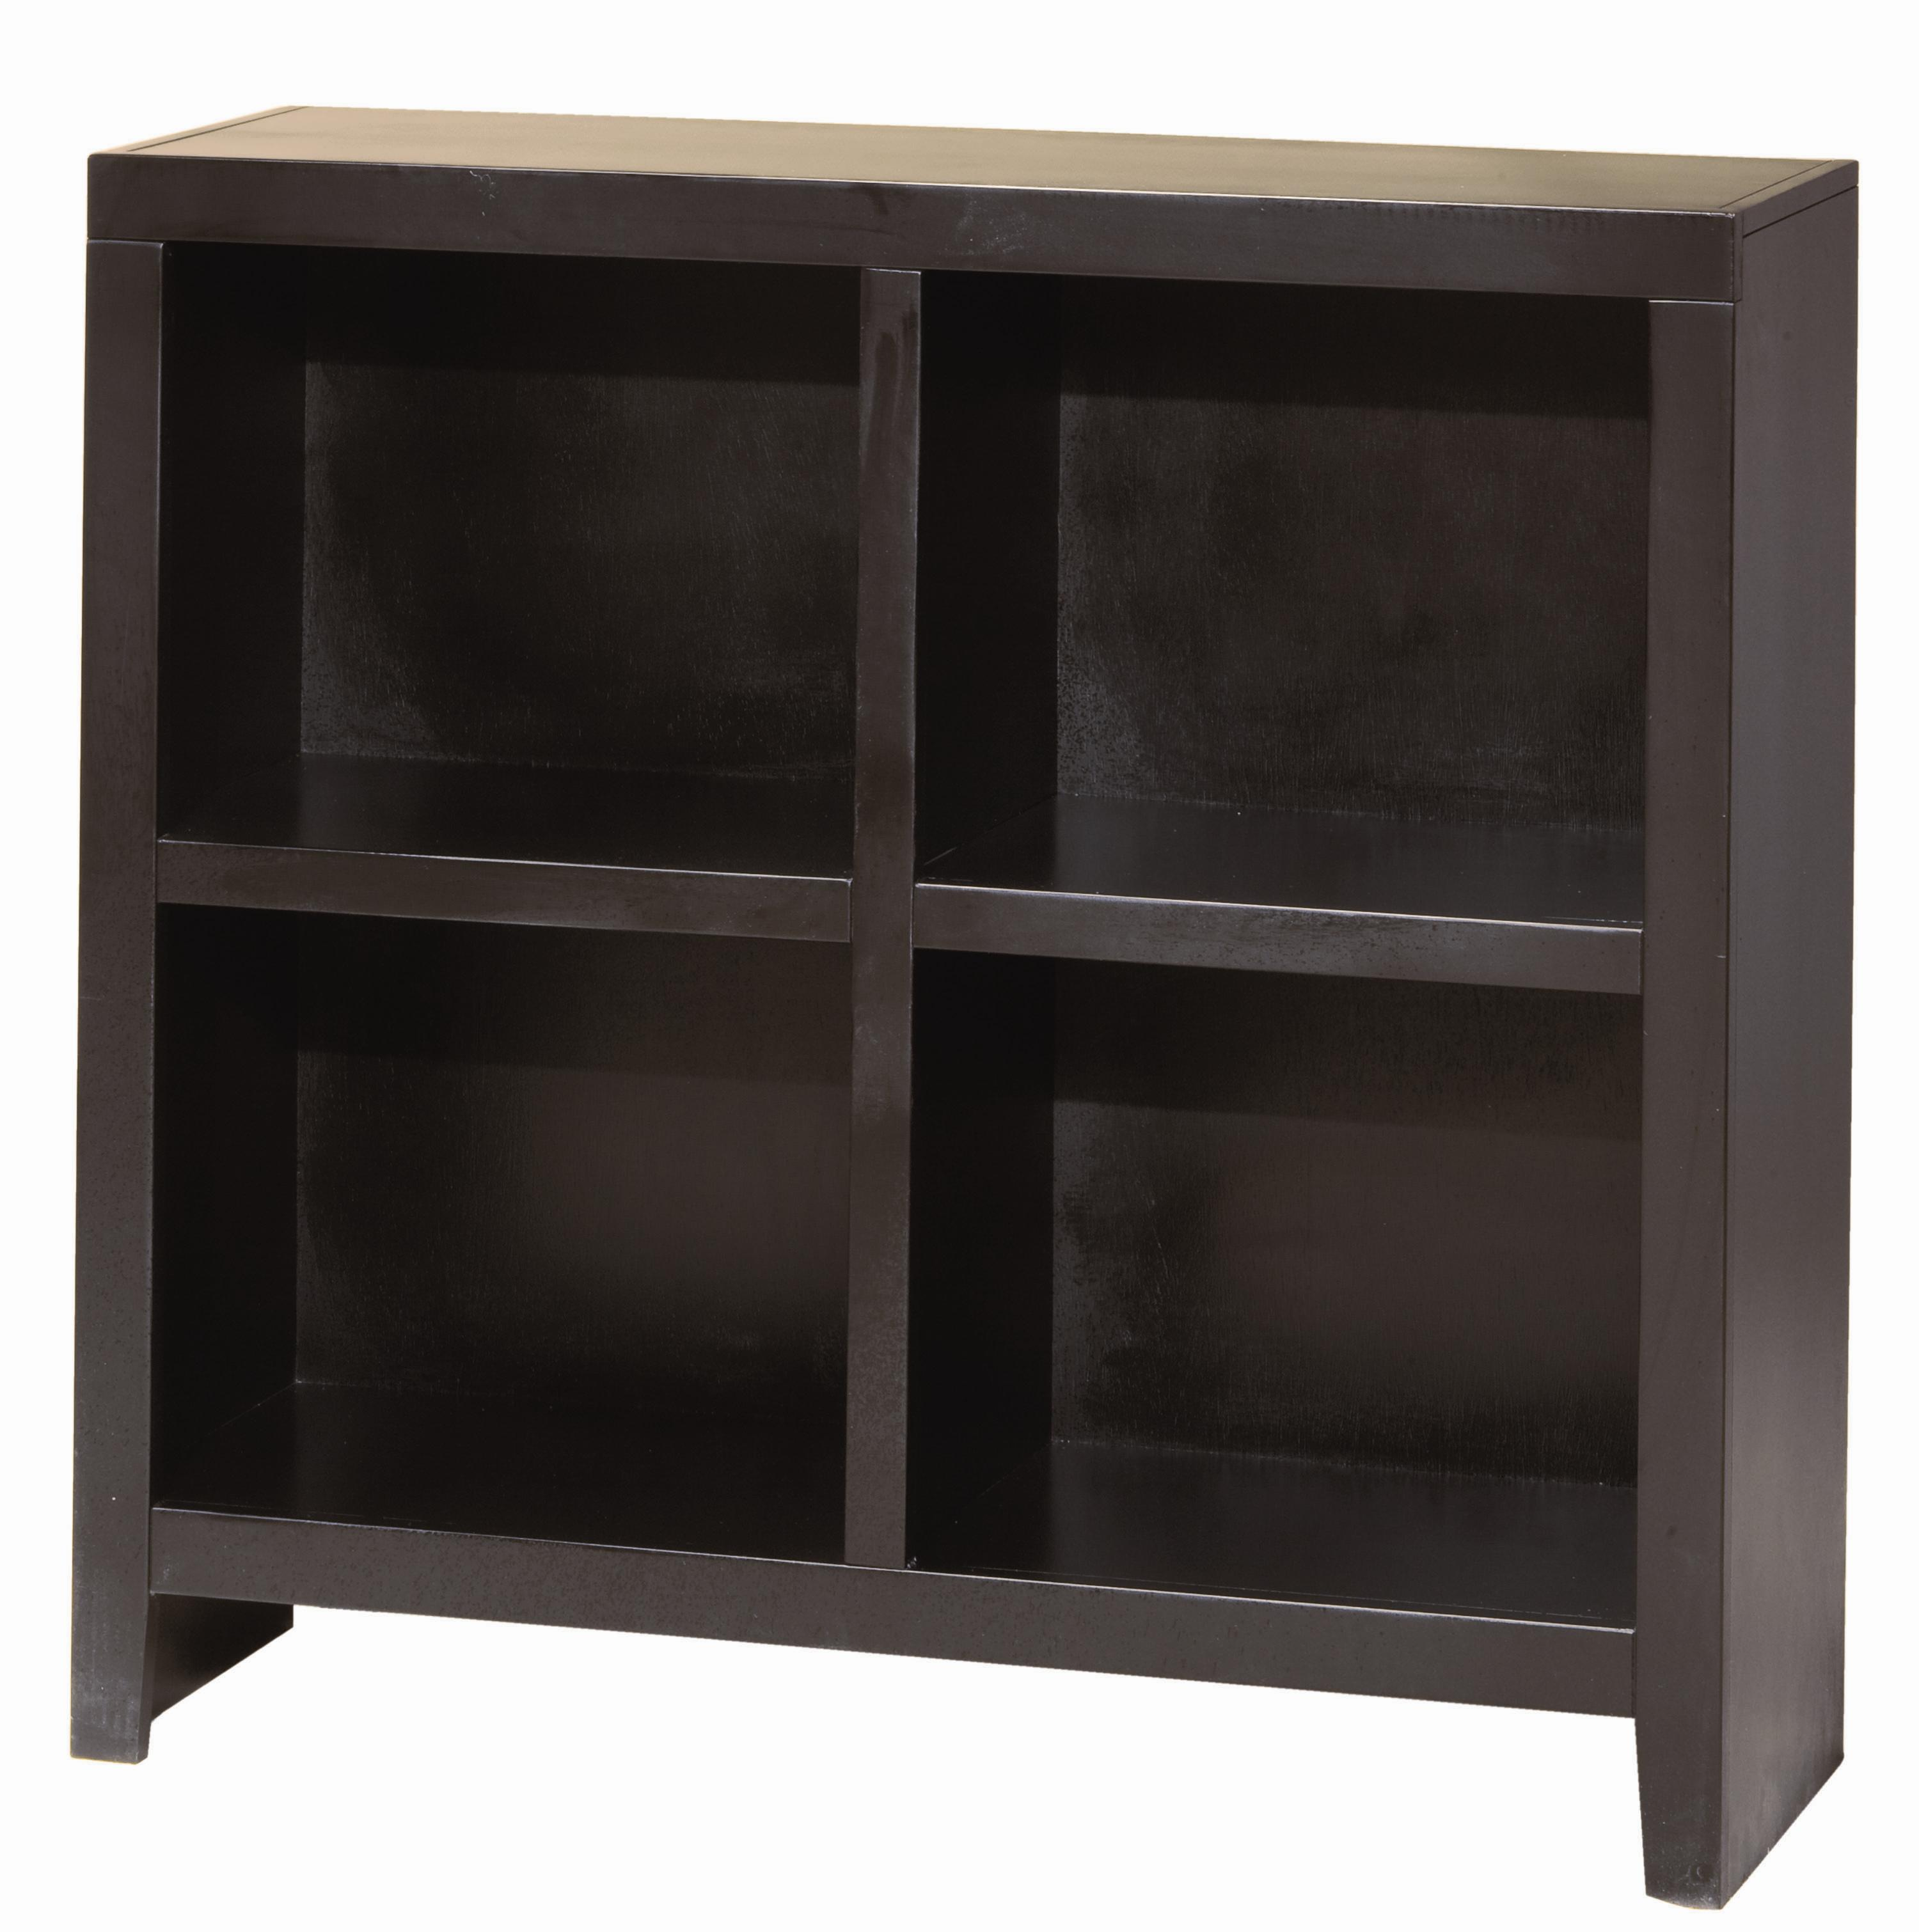 Aspenhome Essentials Lifestyle 38 Inch Cube Bookcase - Item Number: CL4038-BLK